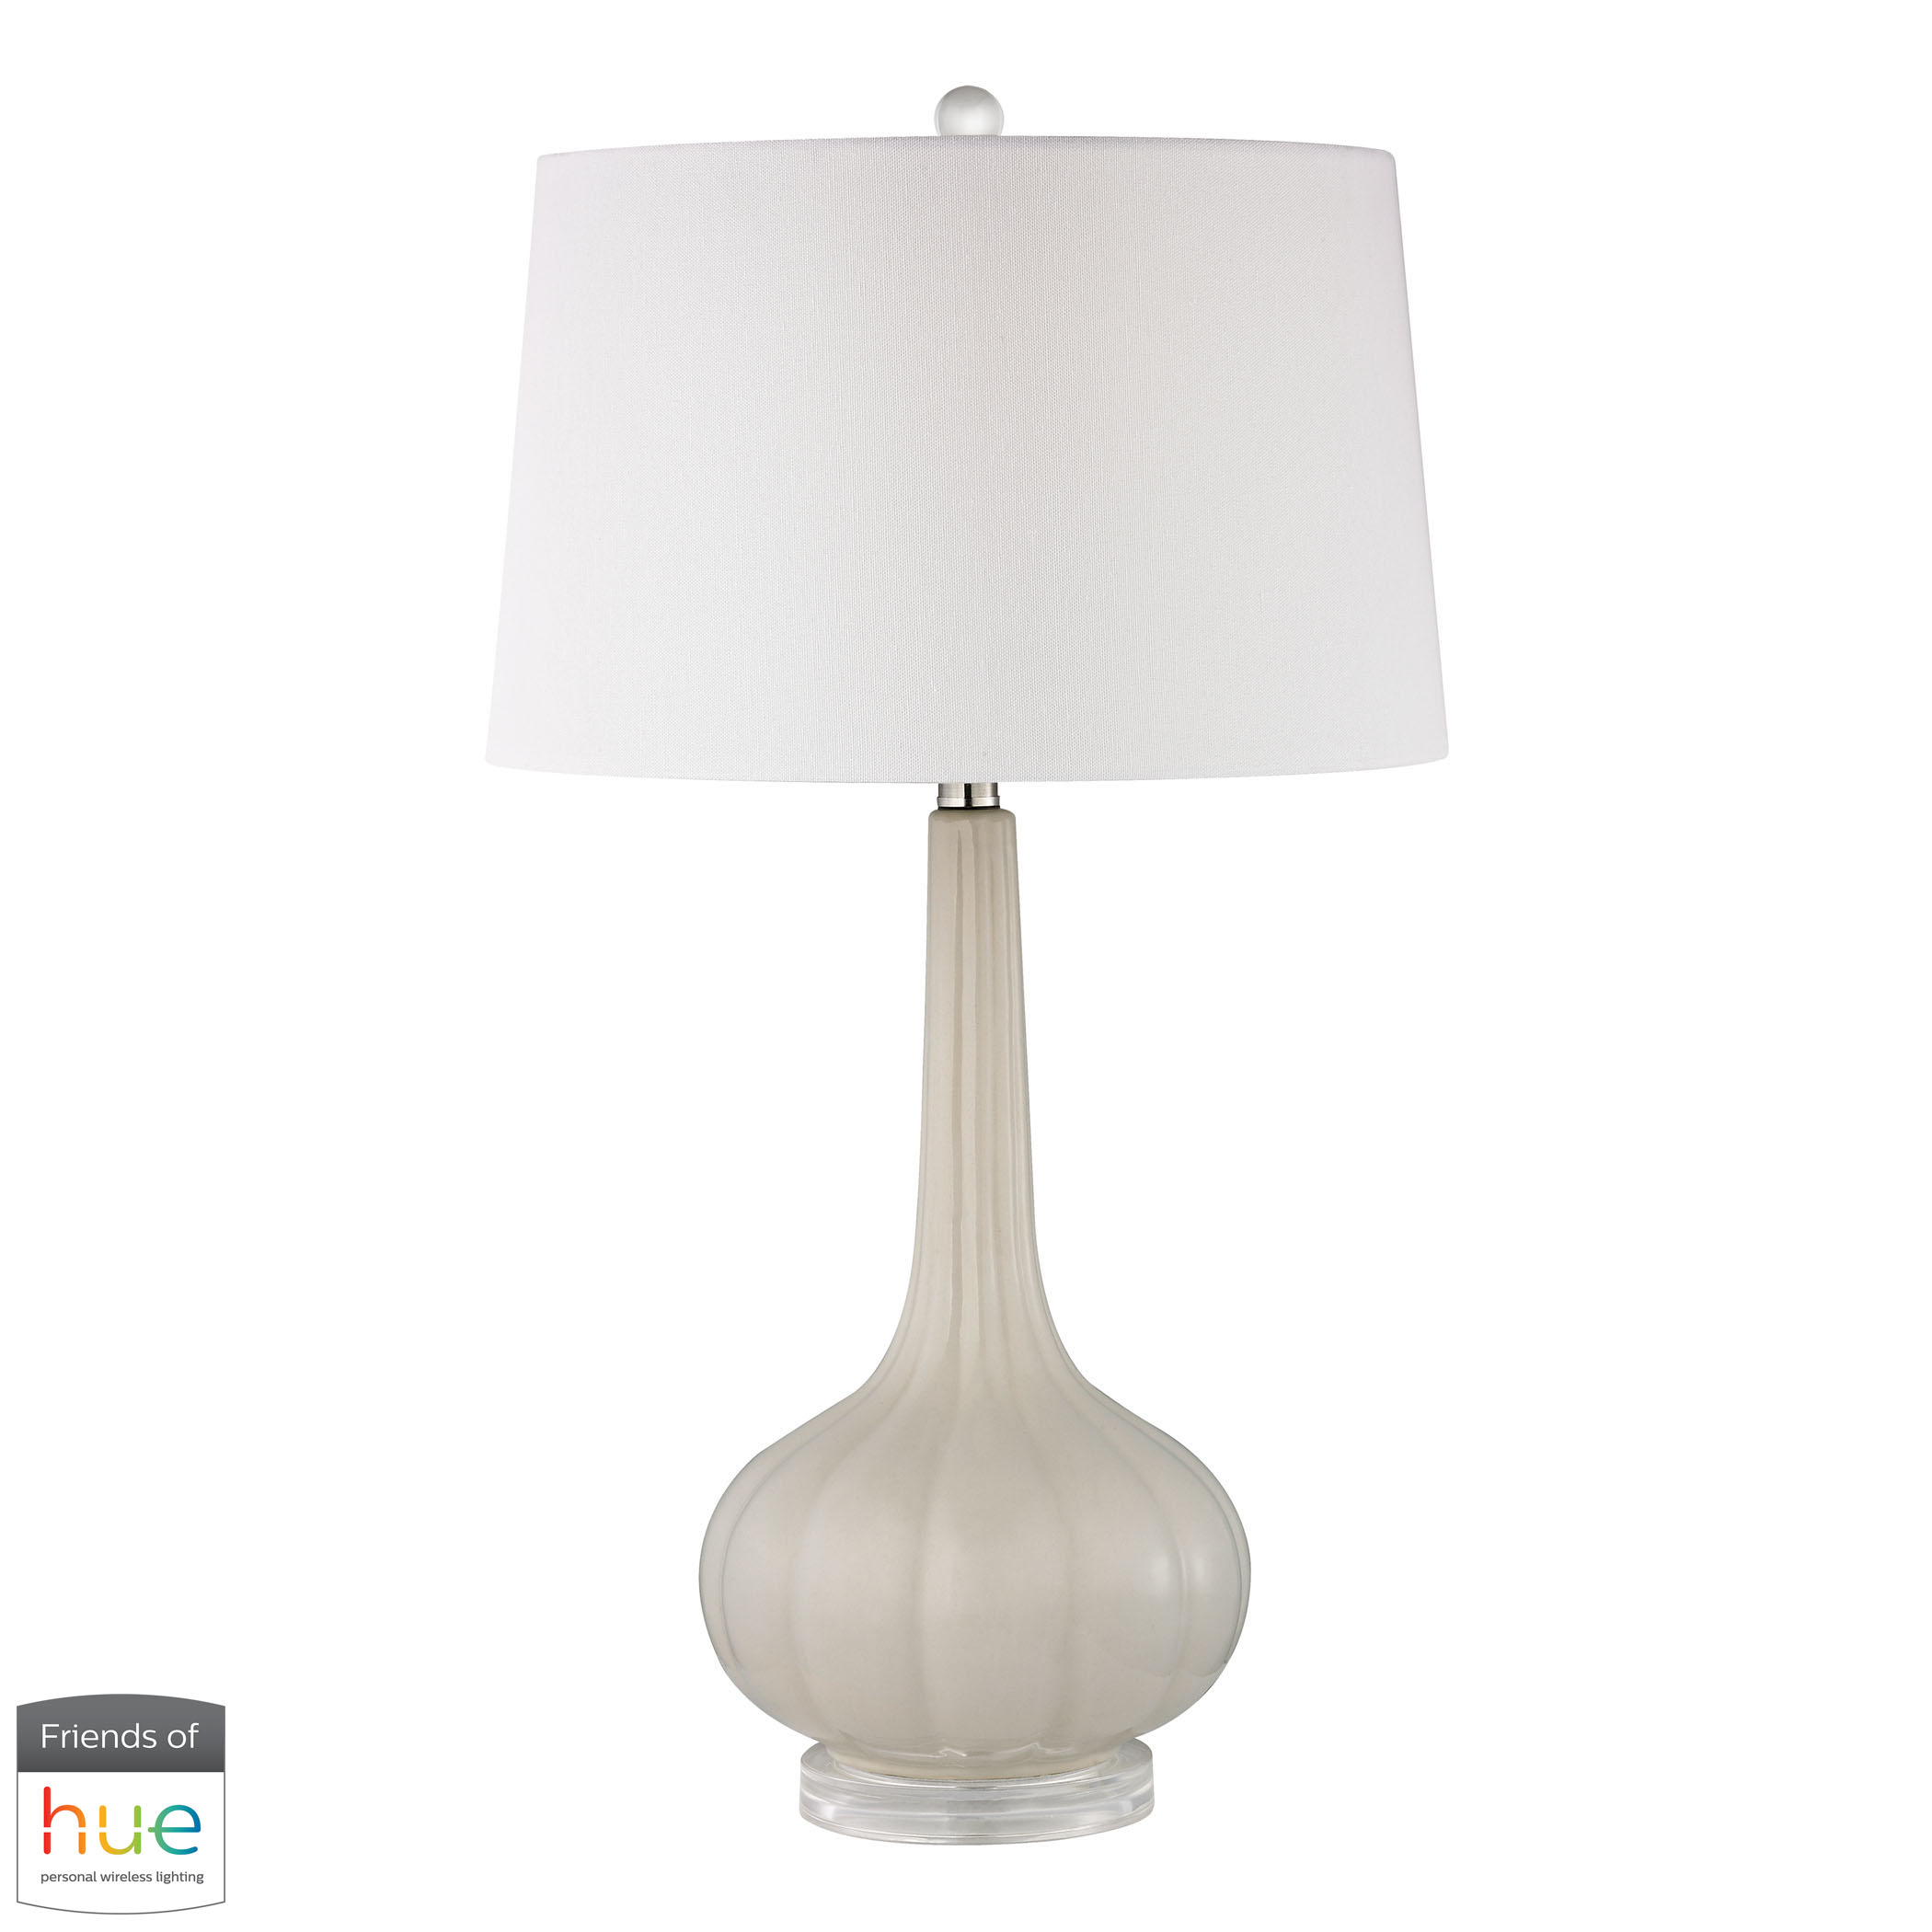 Abbey Lane Ceramic Table Lamp in Off-White with Philips Hue LED | Elk Home